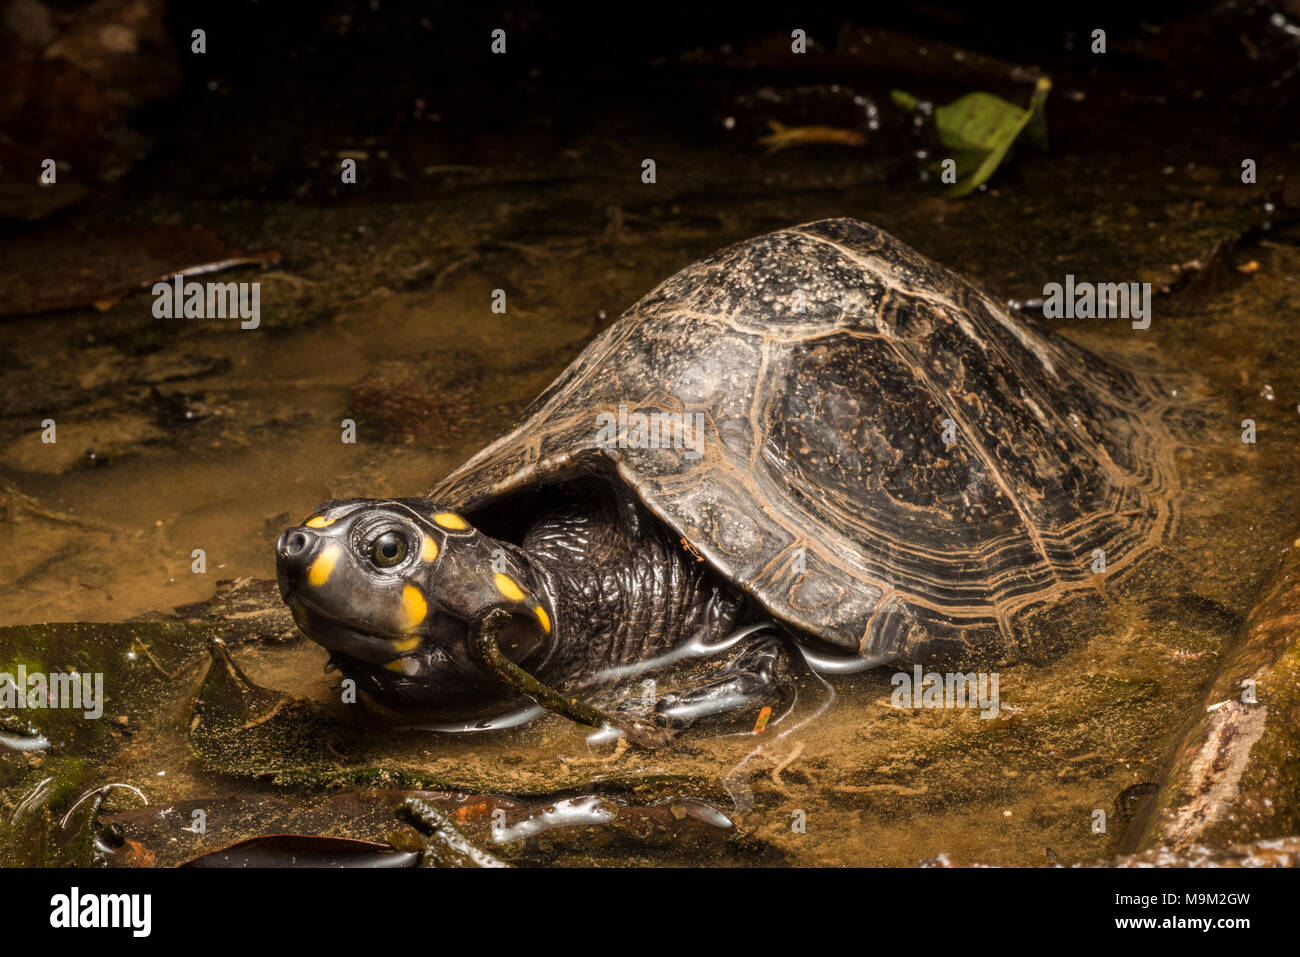 The threatened freshwater turtle, the yellow headed sideneck, from South America. - Stock Image